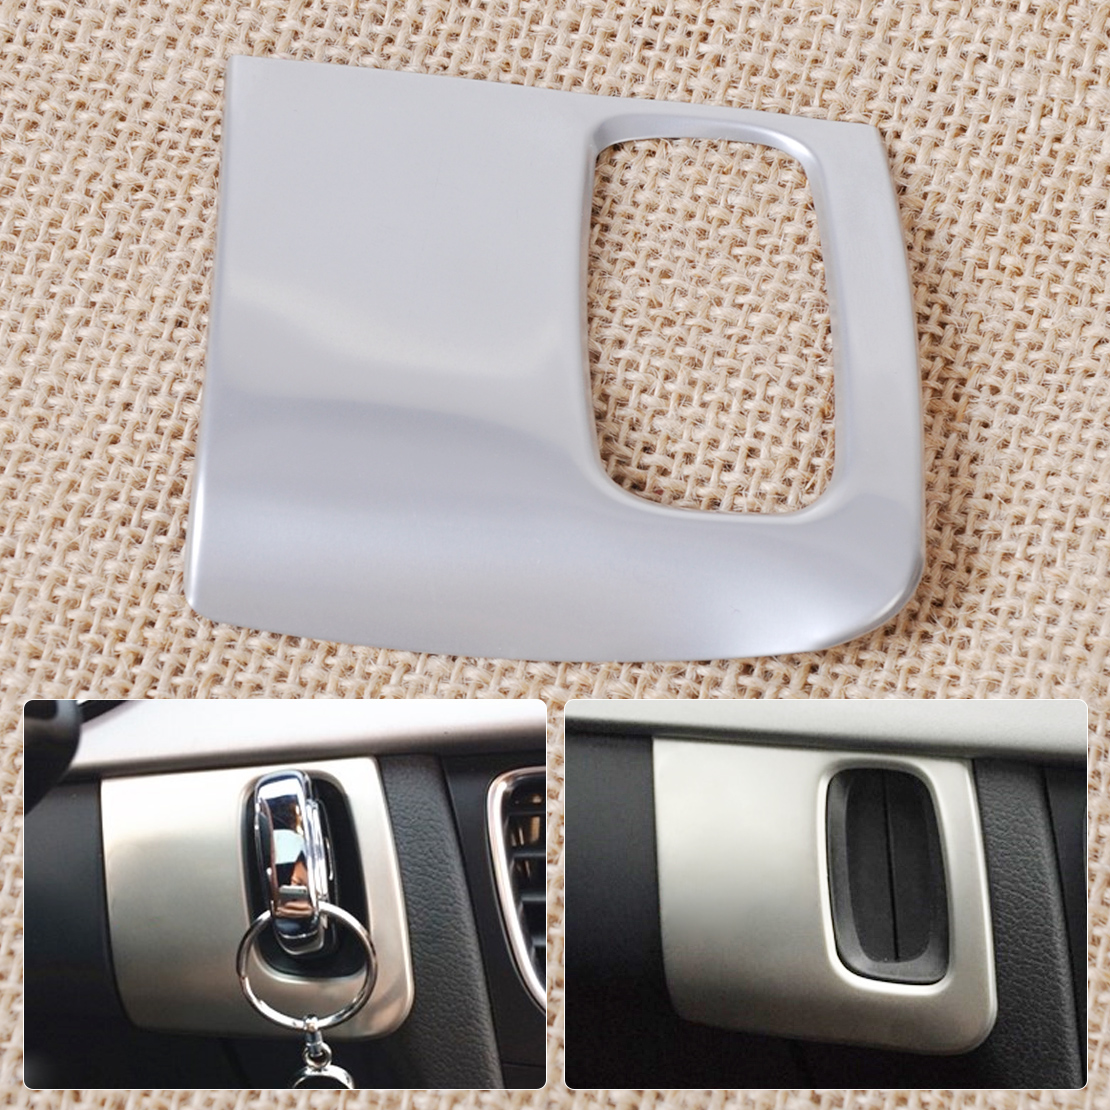 DWCX Silver Stainless Steel Dash Ignition keyhole Molding Cover Trim for <font><b>Audi</b></font> <font><b>A4</b></font> A5 2009 2010 2011 2012 <font><b>2013</b></font> 2014 2015 image